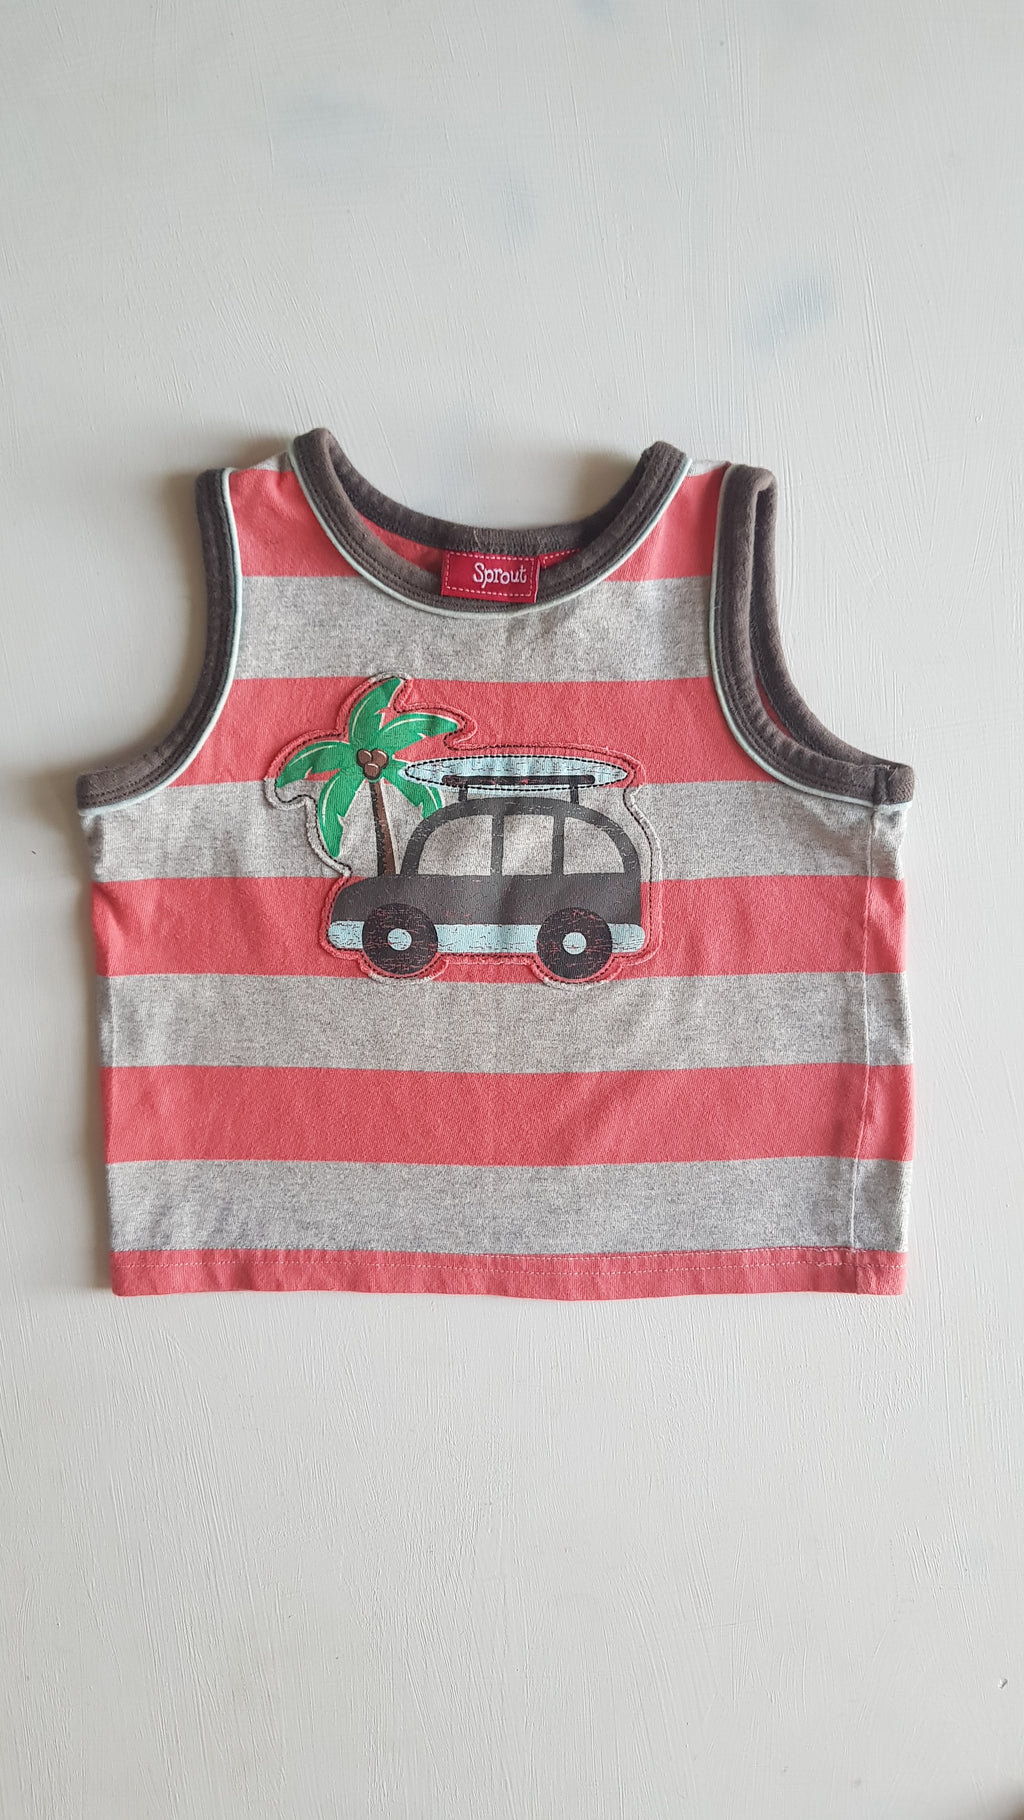 THRIFT Sprout - Coral Stripe Singlet Size 2